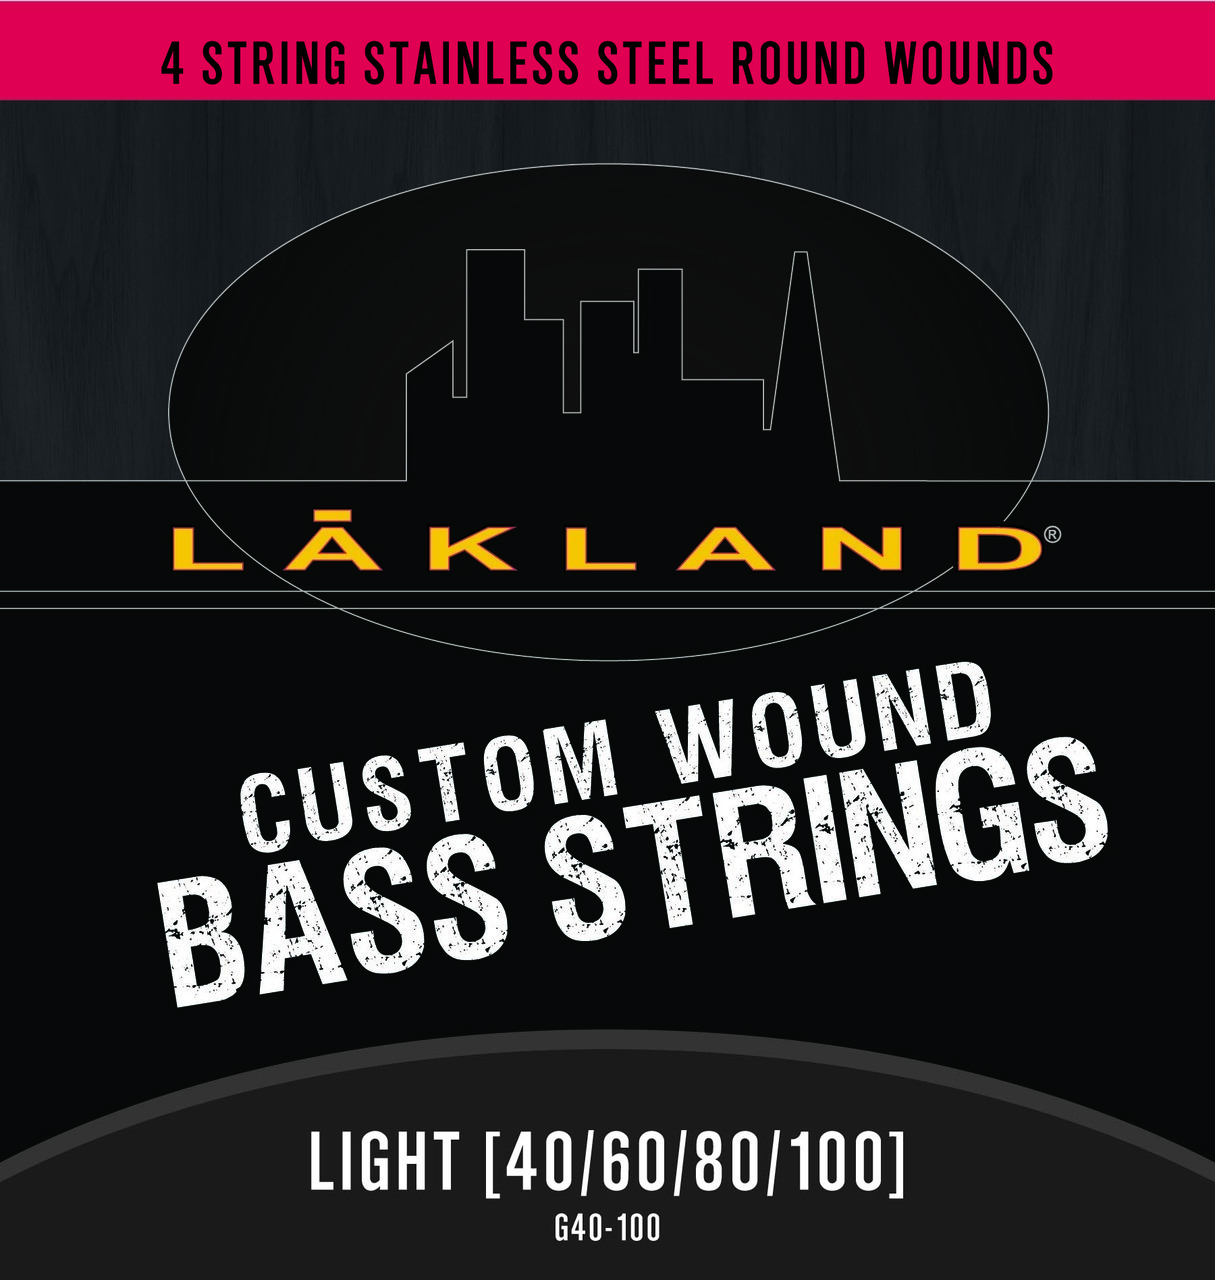 Lakland 4 String Stainless Steel Round Wound Light Gauge Bass Strings